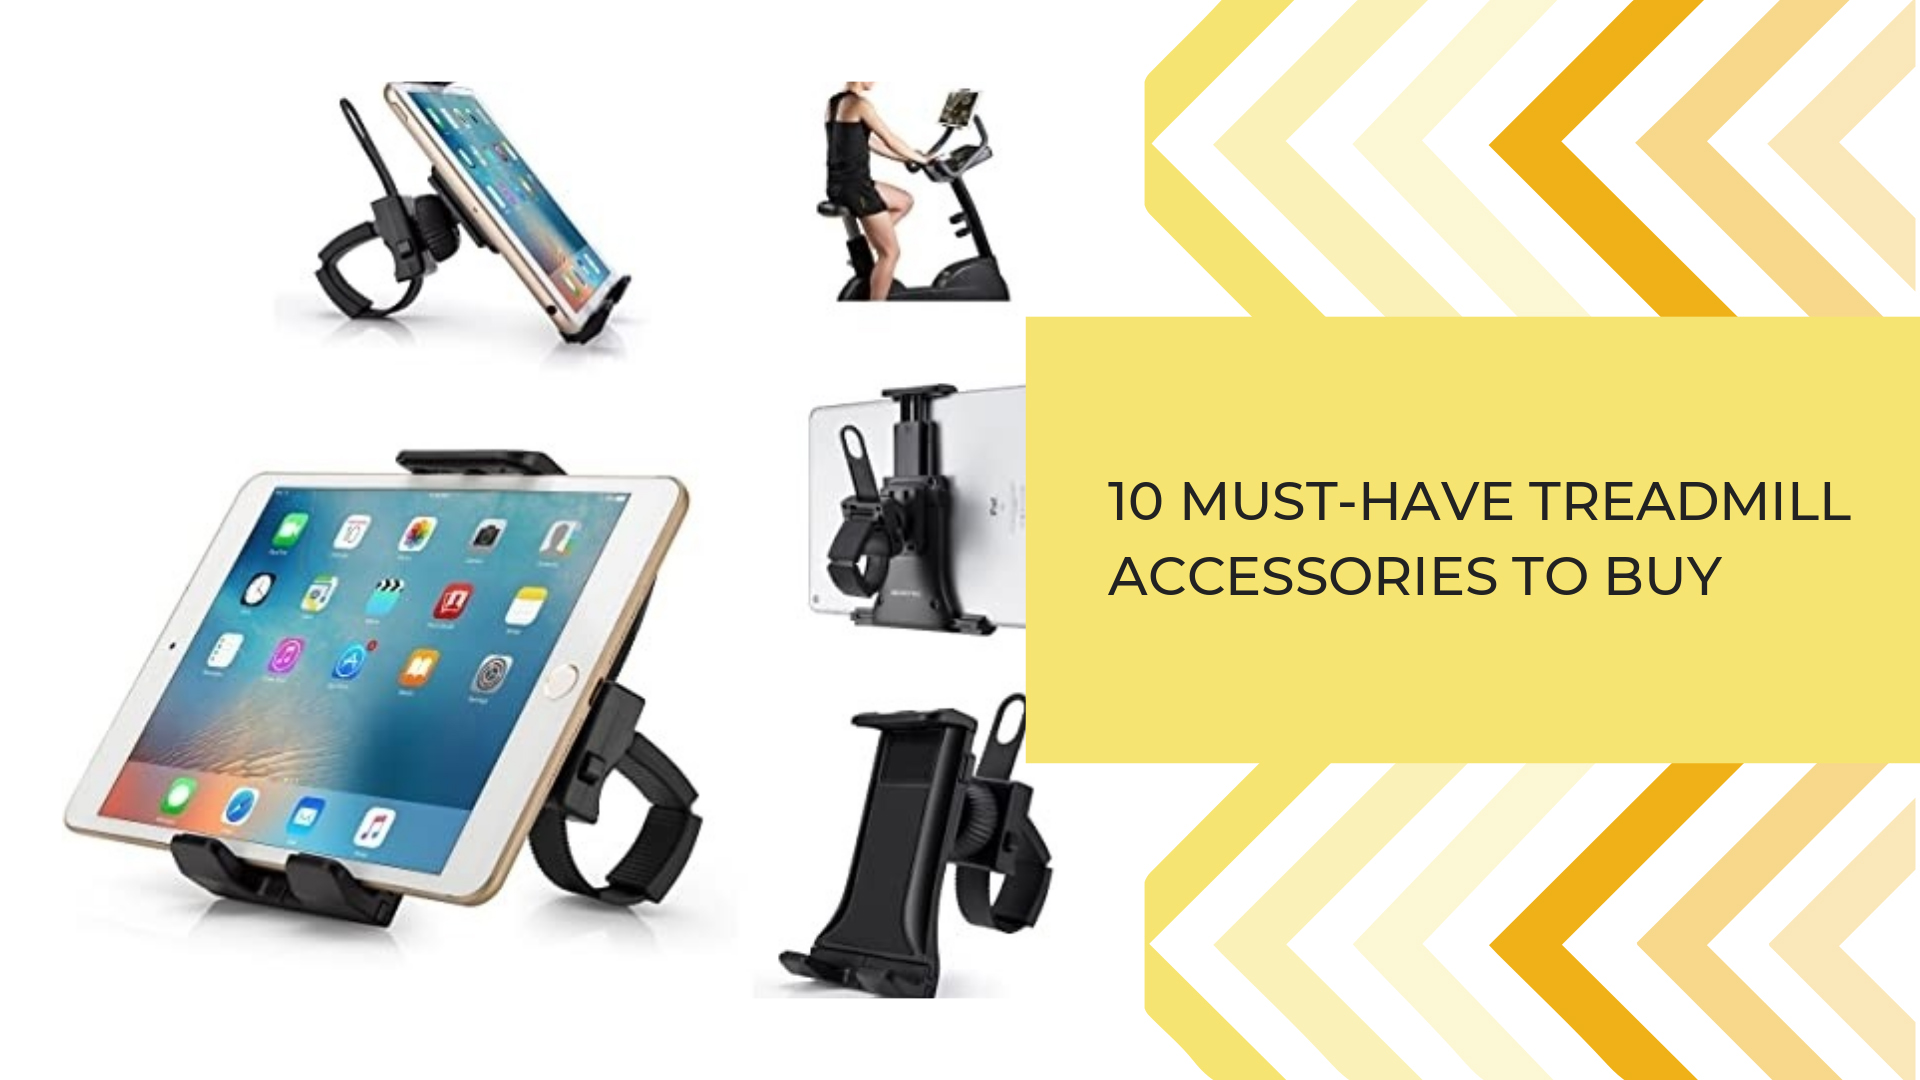 10 Must-Have Treadmill Accessories To Buy